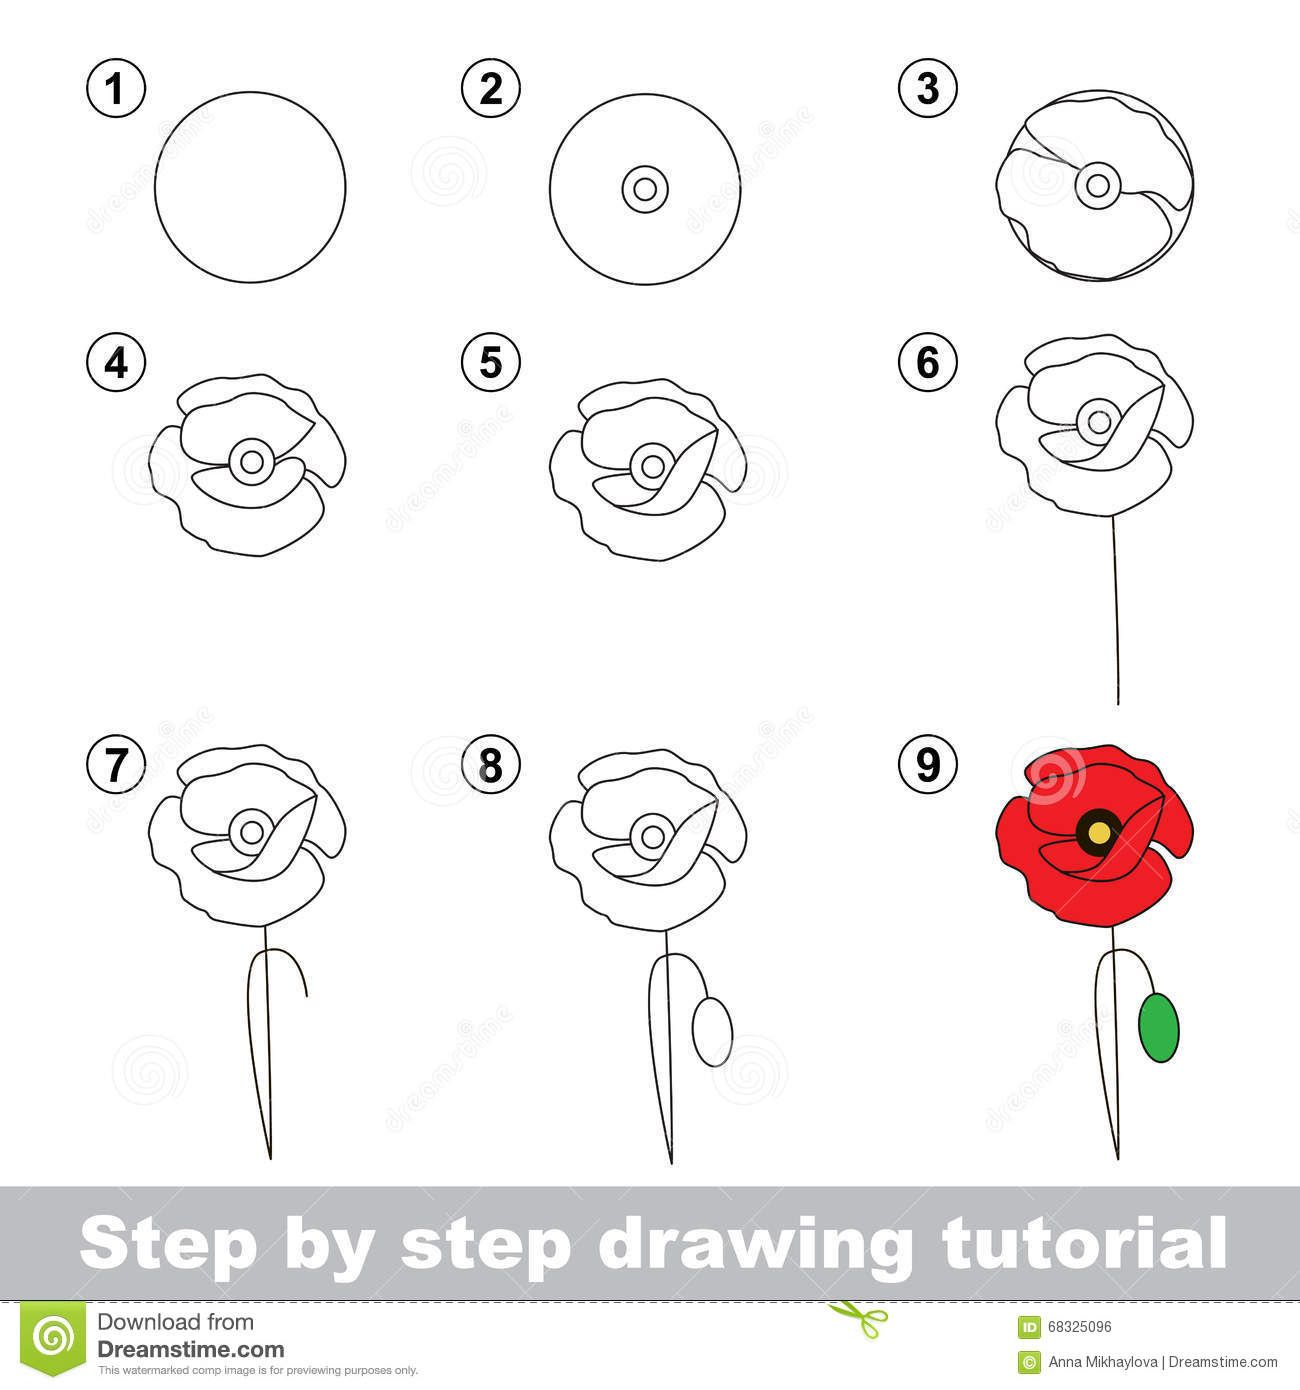 Drawing tutorial how to draw a poppy download from over 54 drawing tutorial how to draw a poppy download from over 54 million high quality stock photos images vectors sign up for free today image 68325096 mightylinksfo